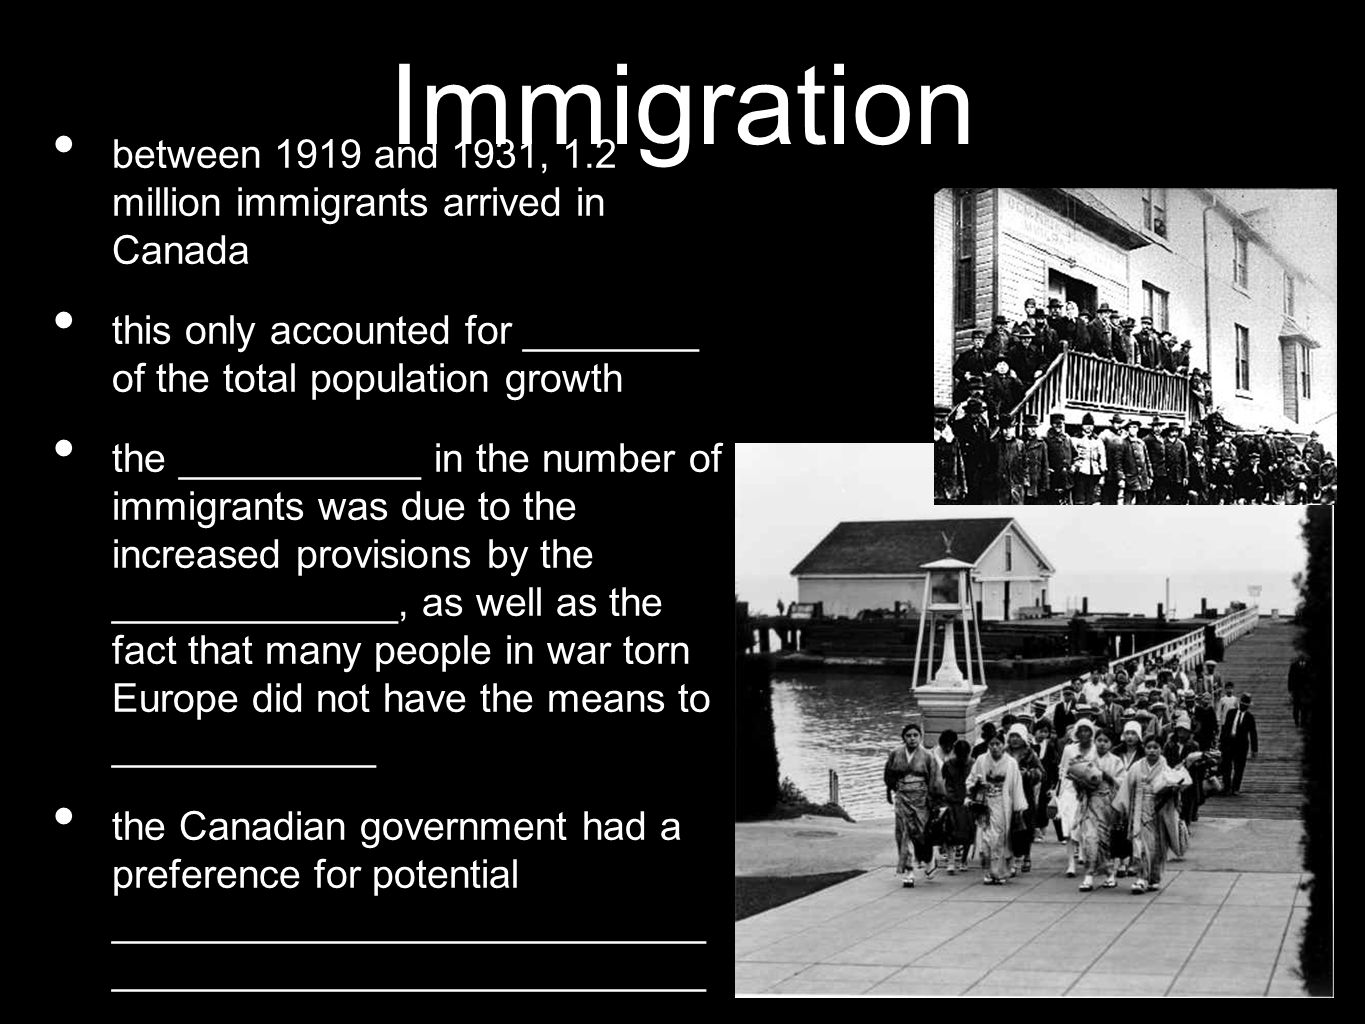 Immigration between 1919 and 1931, 1.2 million immigrants arrived in Canada this only accounted for ________ of the total population growth the ______